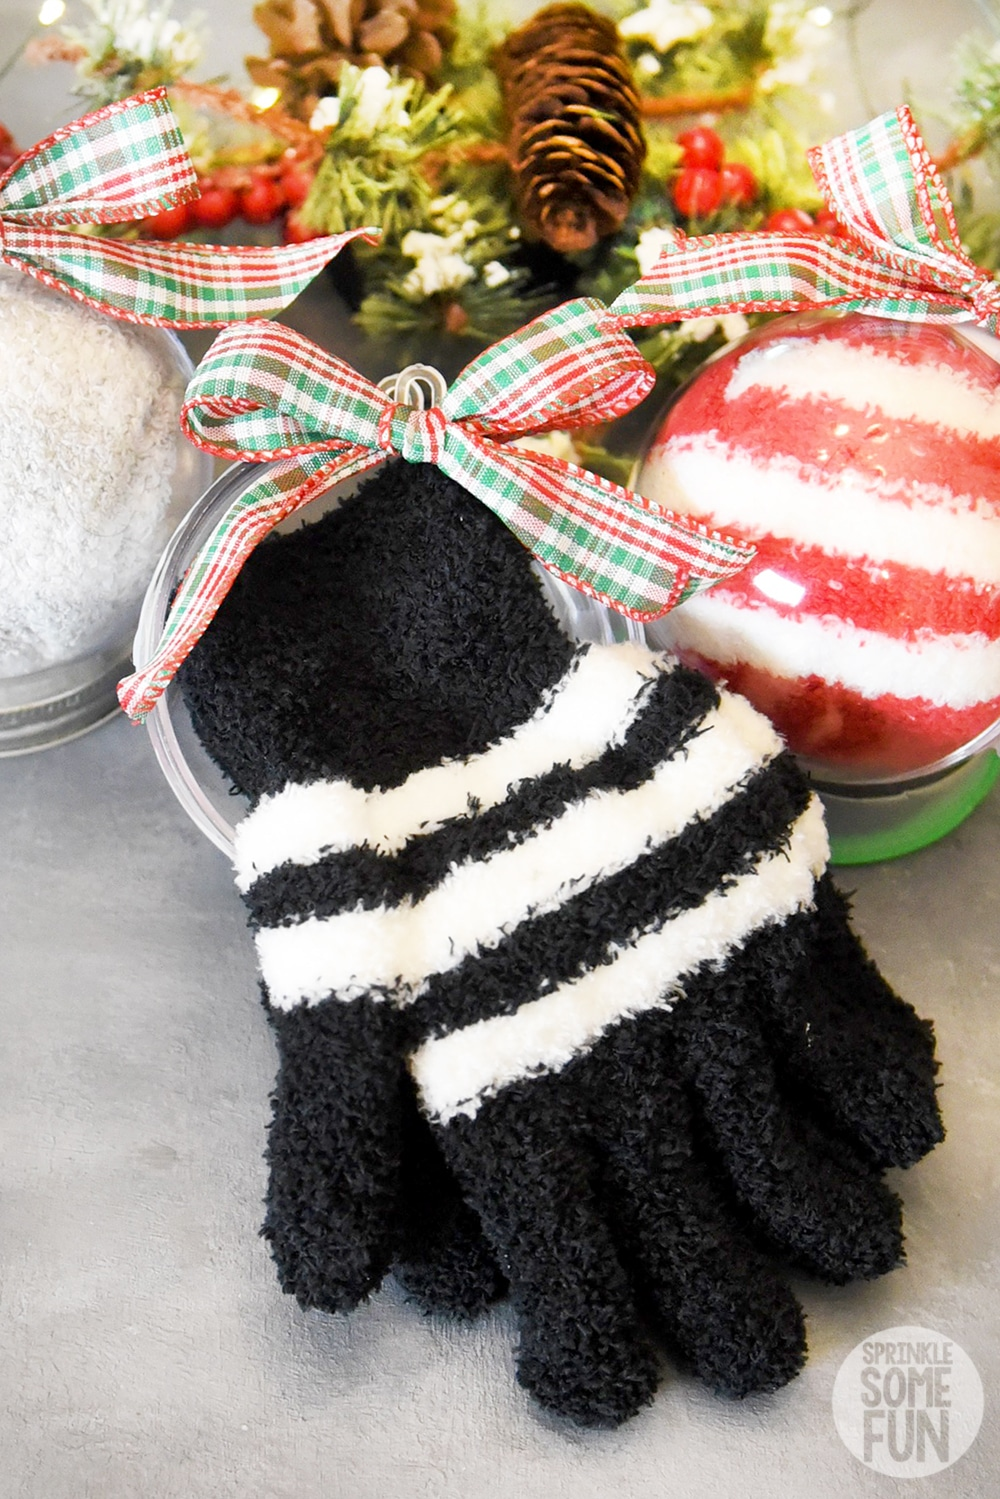 Winter Warmth Ornaments with gloves and socks